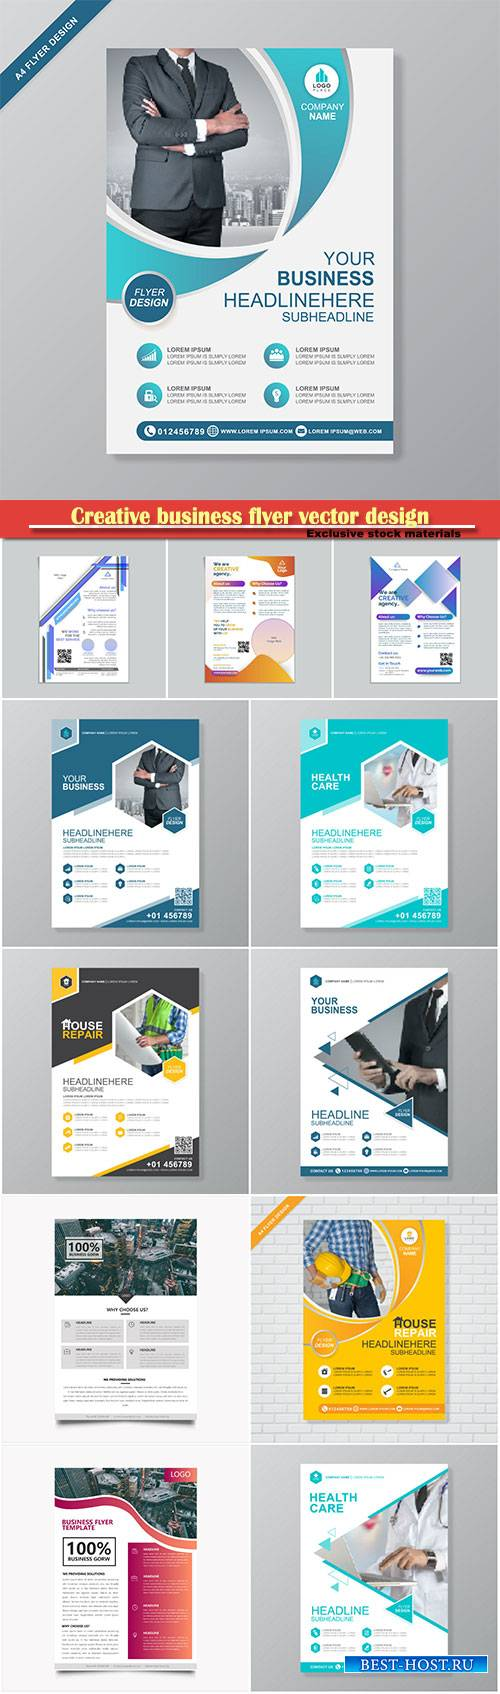 Creative business flyer vector design, corporate template layout presentati ...